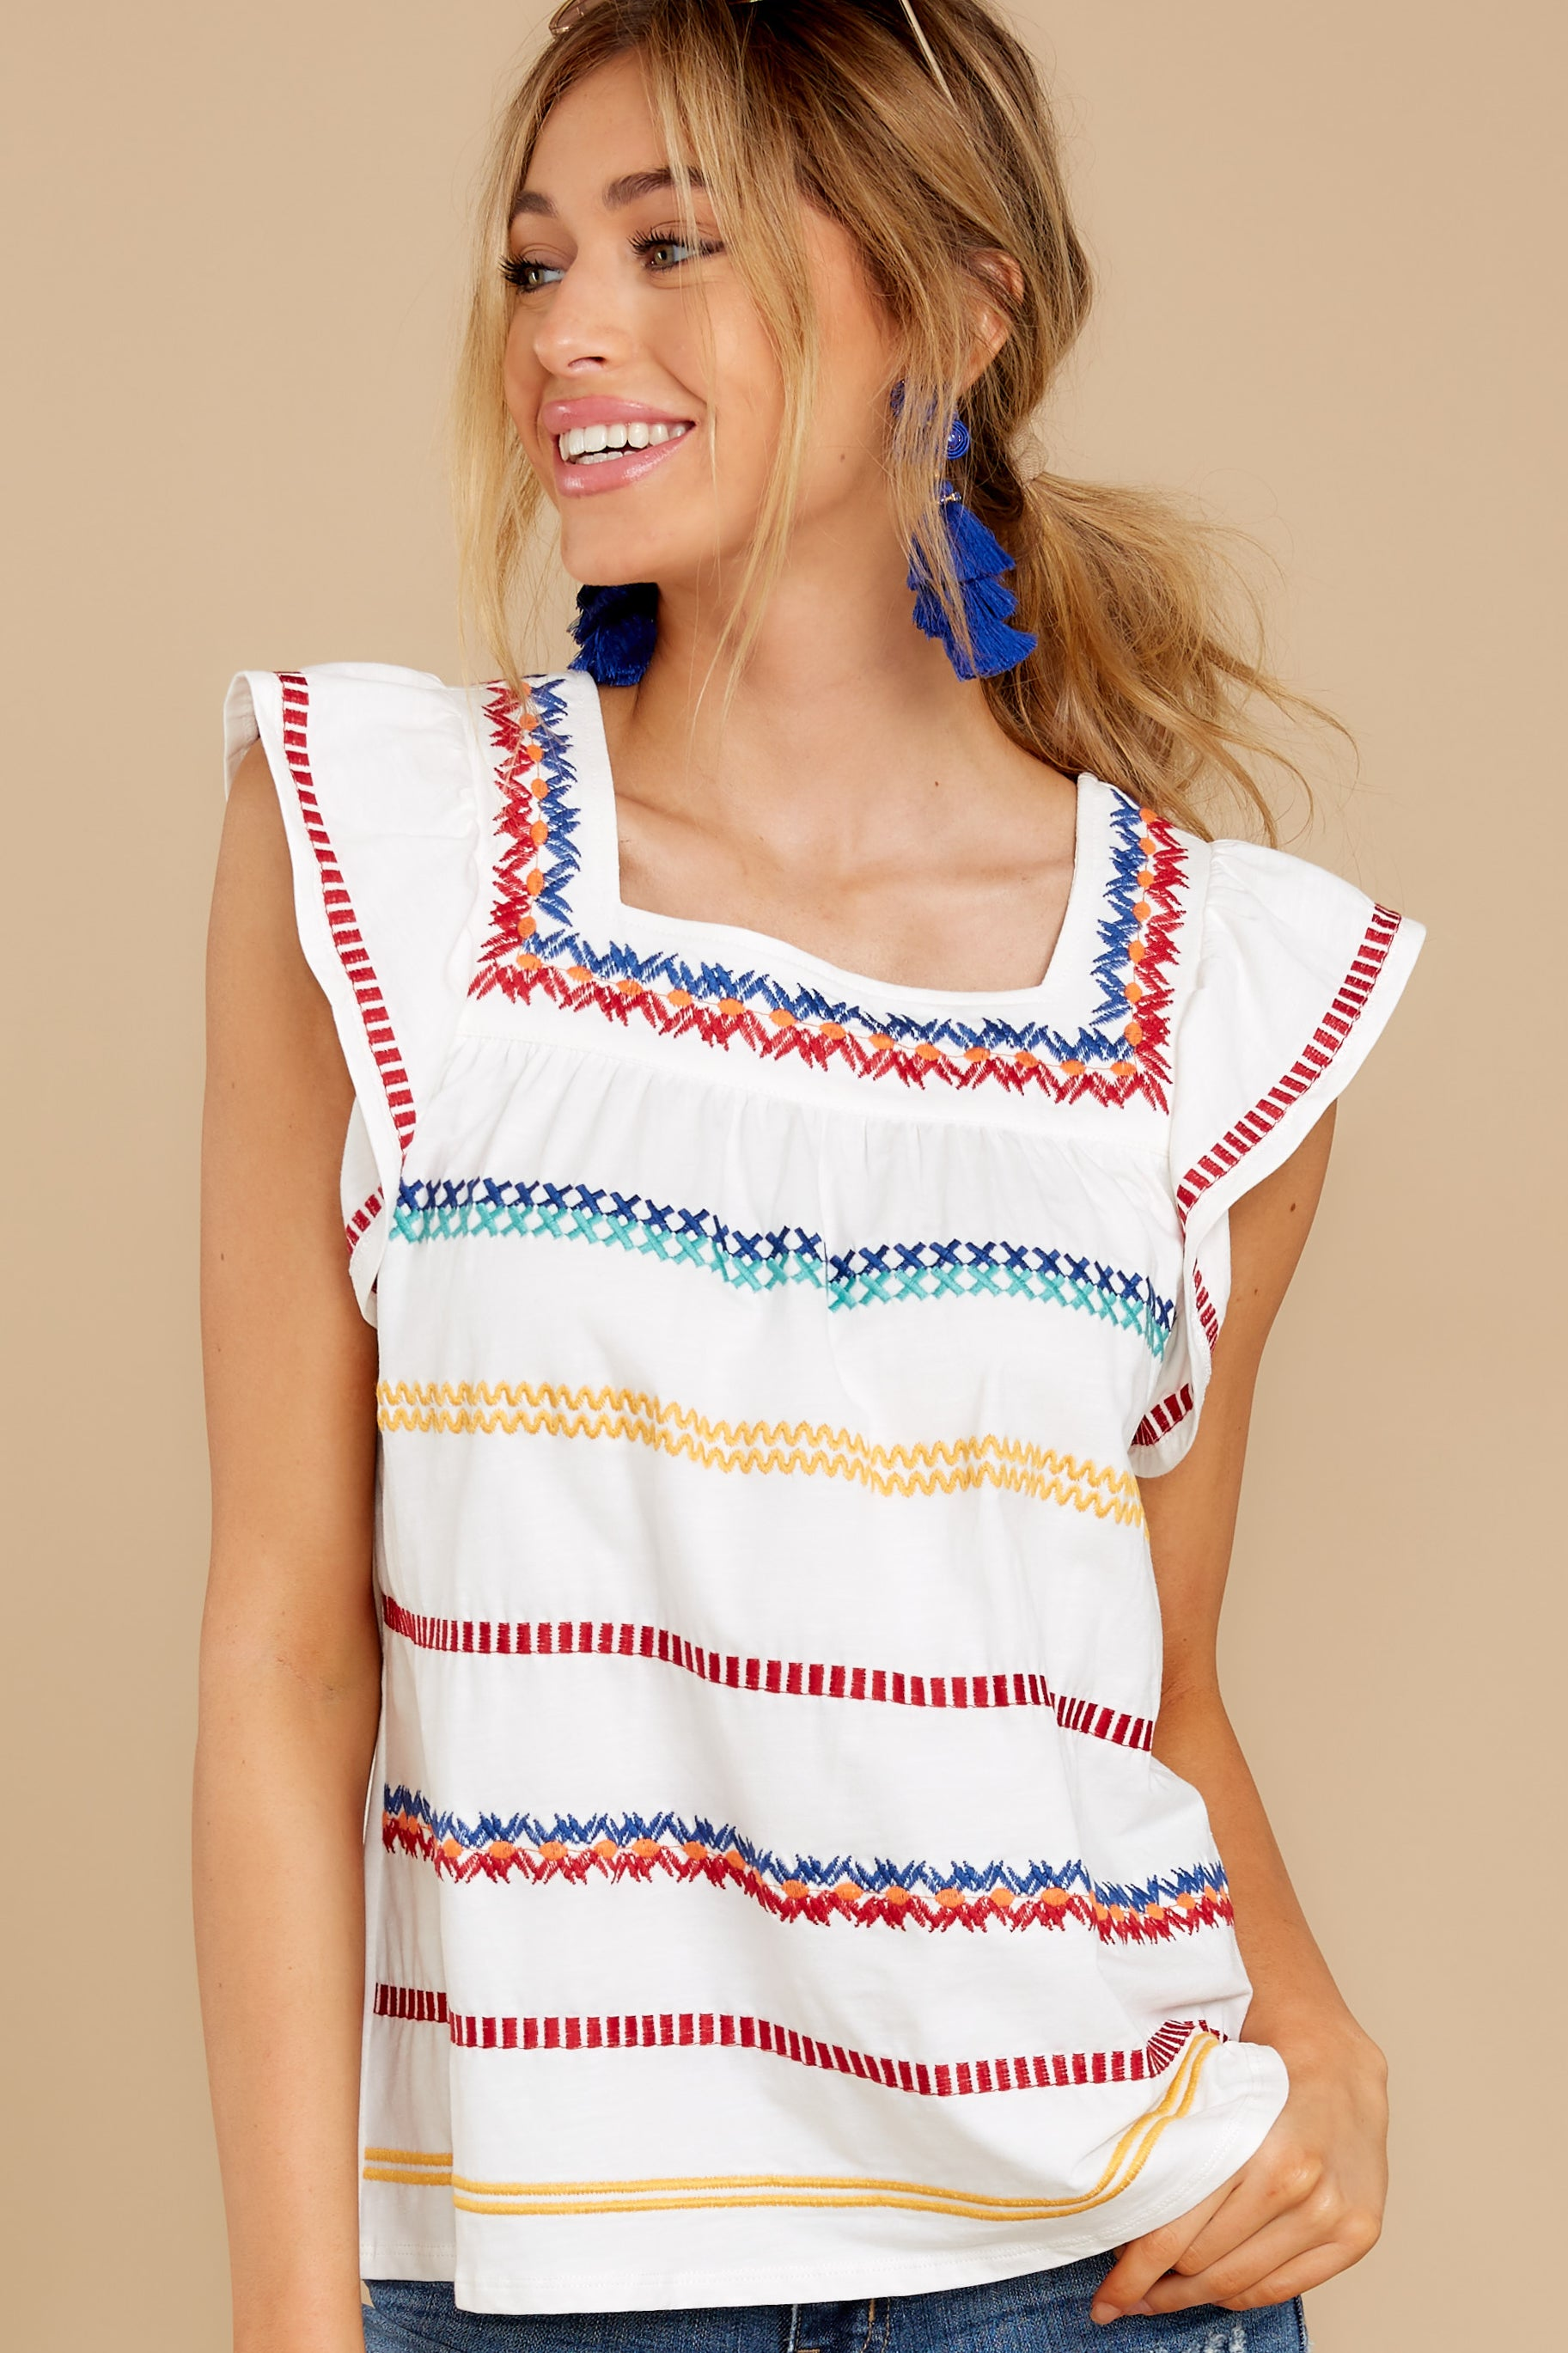 Women's 70s Shirts, Blouses, Hippie Tops THML Going With You White Multi Top $56.00 AT vintagedancer.com